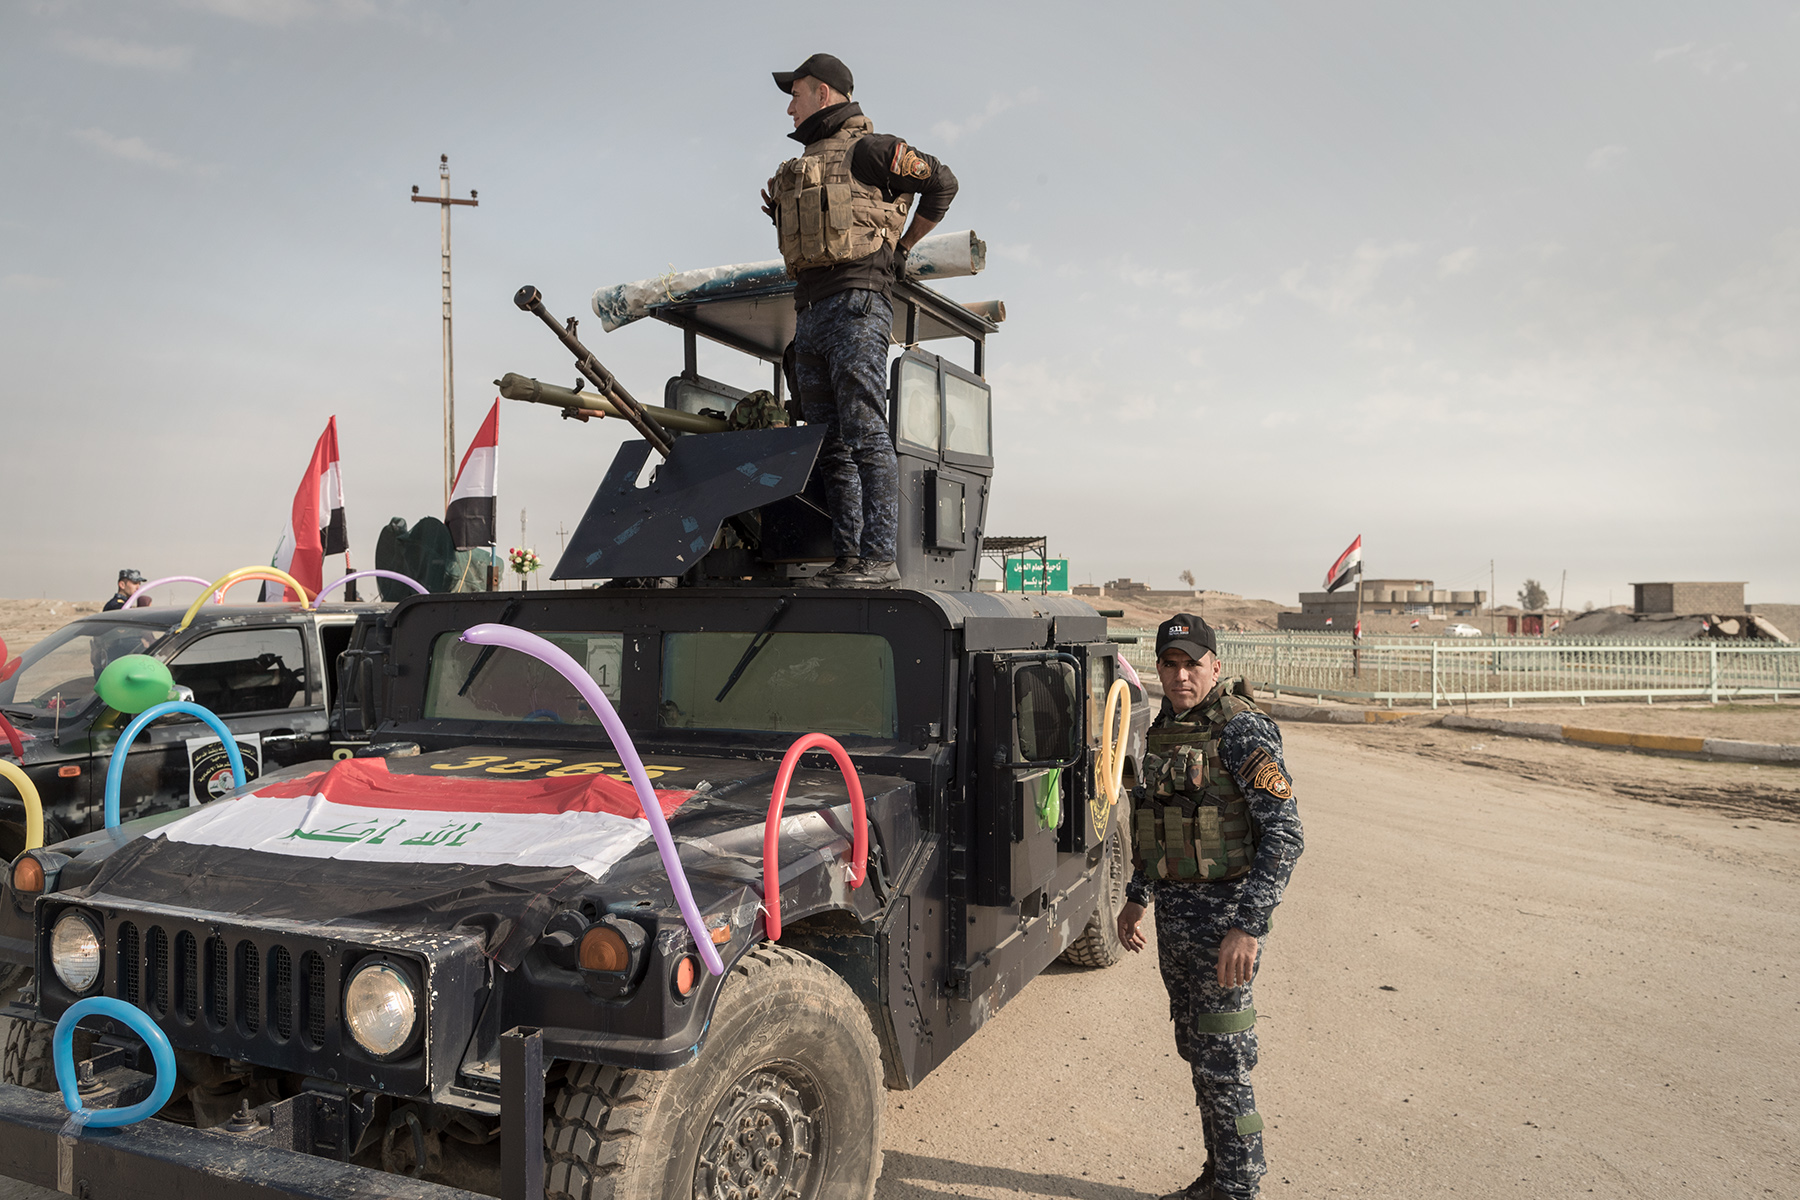 Military drive decorated humvees and distribute sweets during the Police Day in Hammam al-Alil, Iraq on Jan. 9, 2017. The predominantly Shiite Federal Police tries hard to cajole the Sunni civilians.